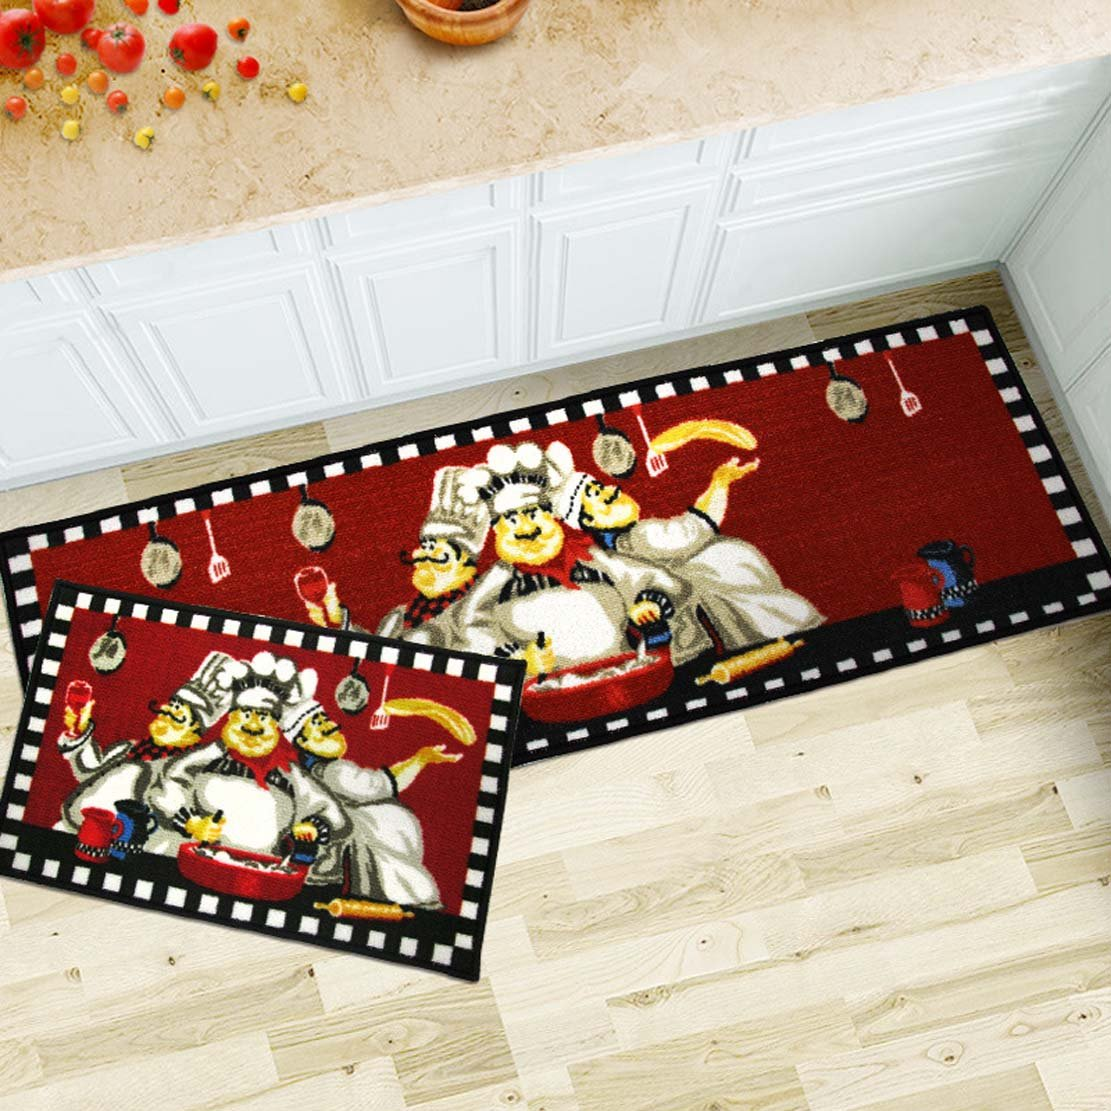 Delicieux Amazon.com: MAXYOYO 2 Pieces Fat Chefs Kitchen Floor Mats Runner Rug Set, Kitchen Area Rug,Entrance Mat (3 Chefs): Kitchen U0026 Dining